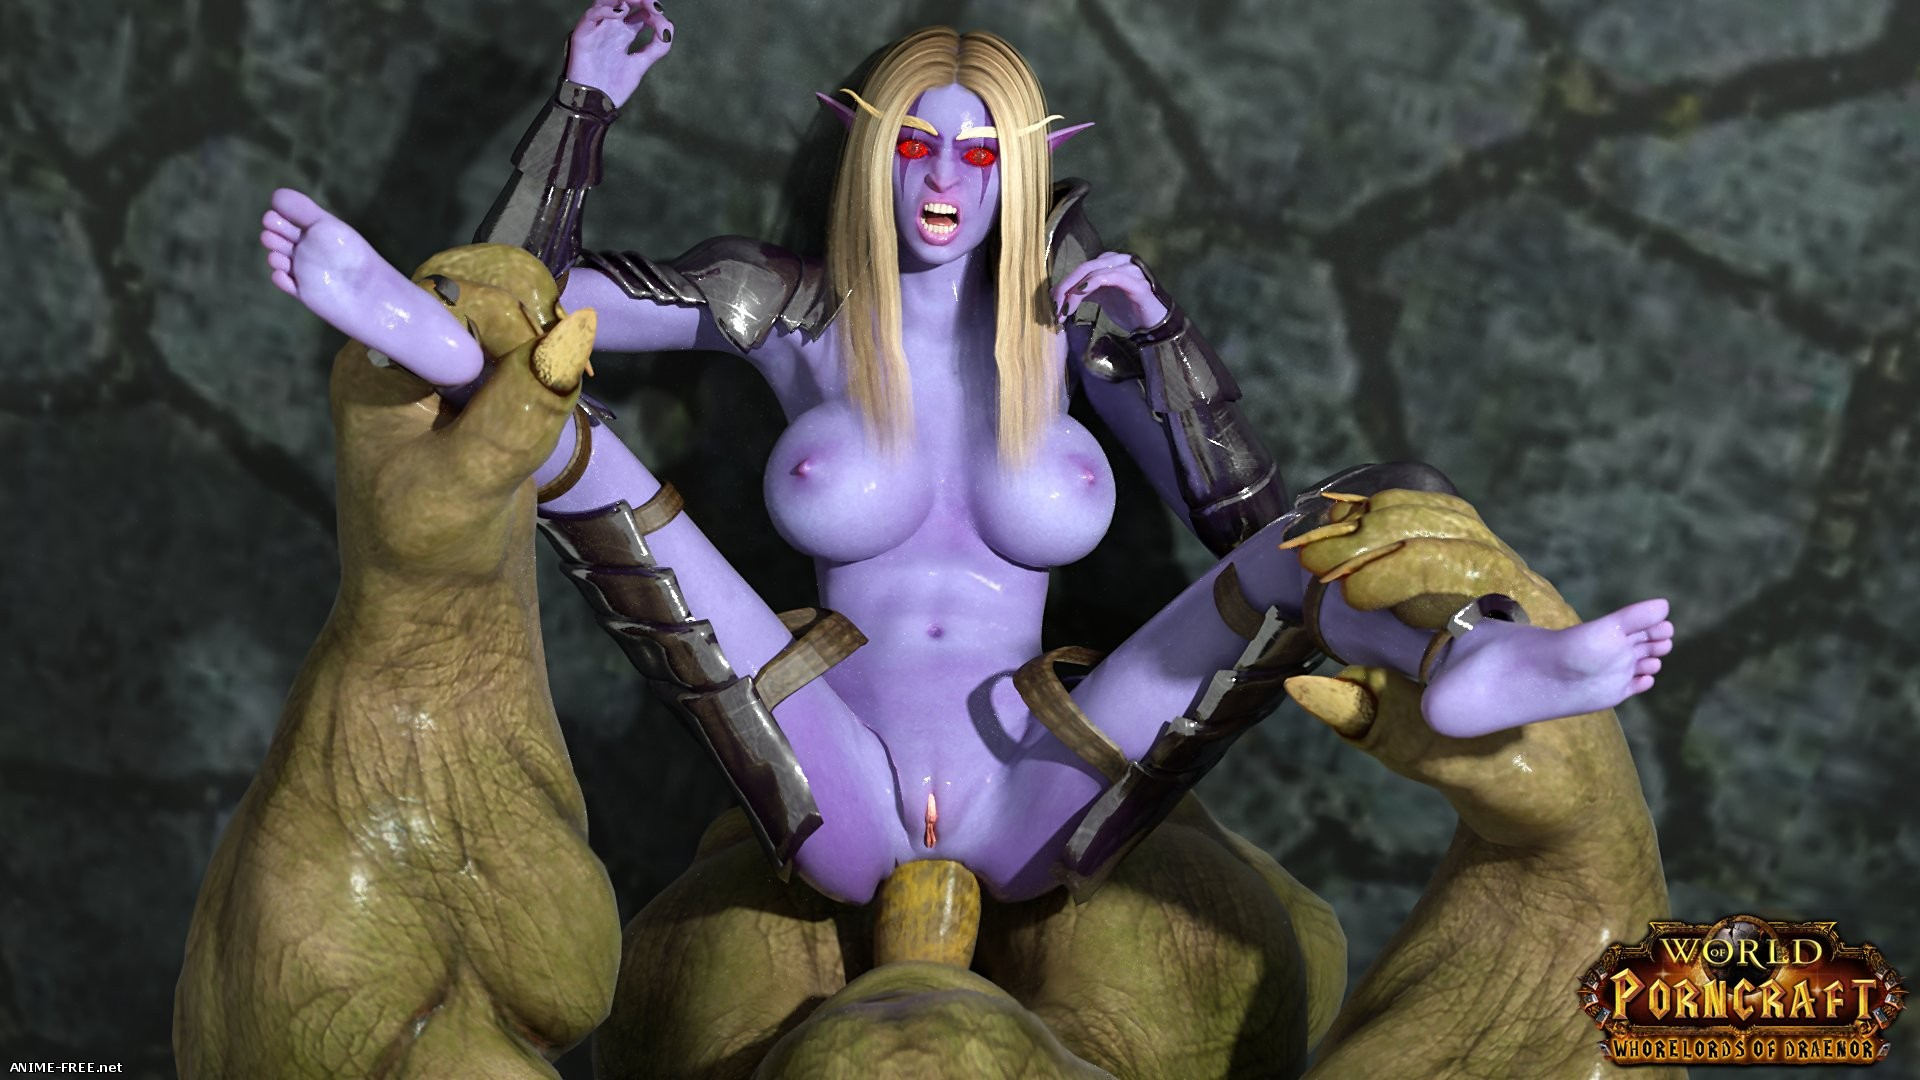 World of Porncraft - Whorelords of Draenor [2016] [Uncen] [RPG, Animation, 3DCG] [ENG] H-Game